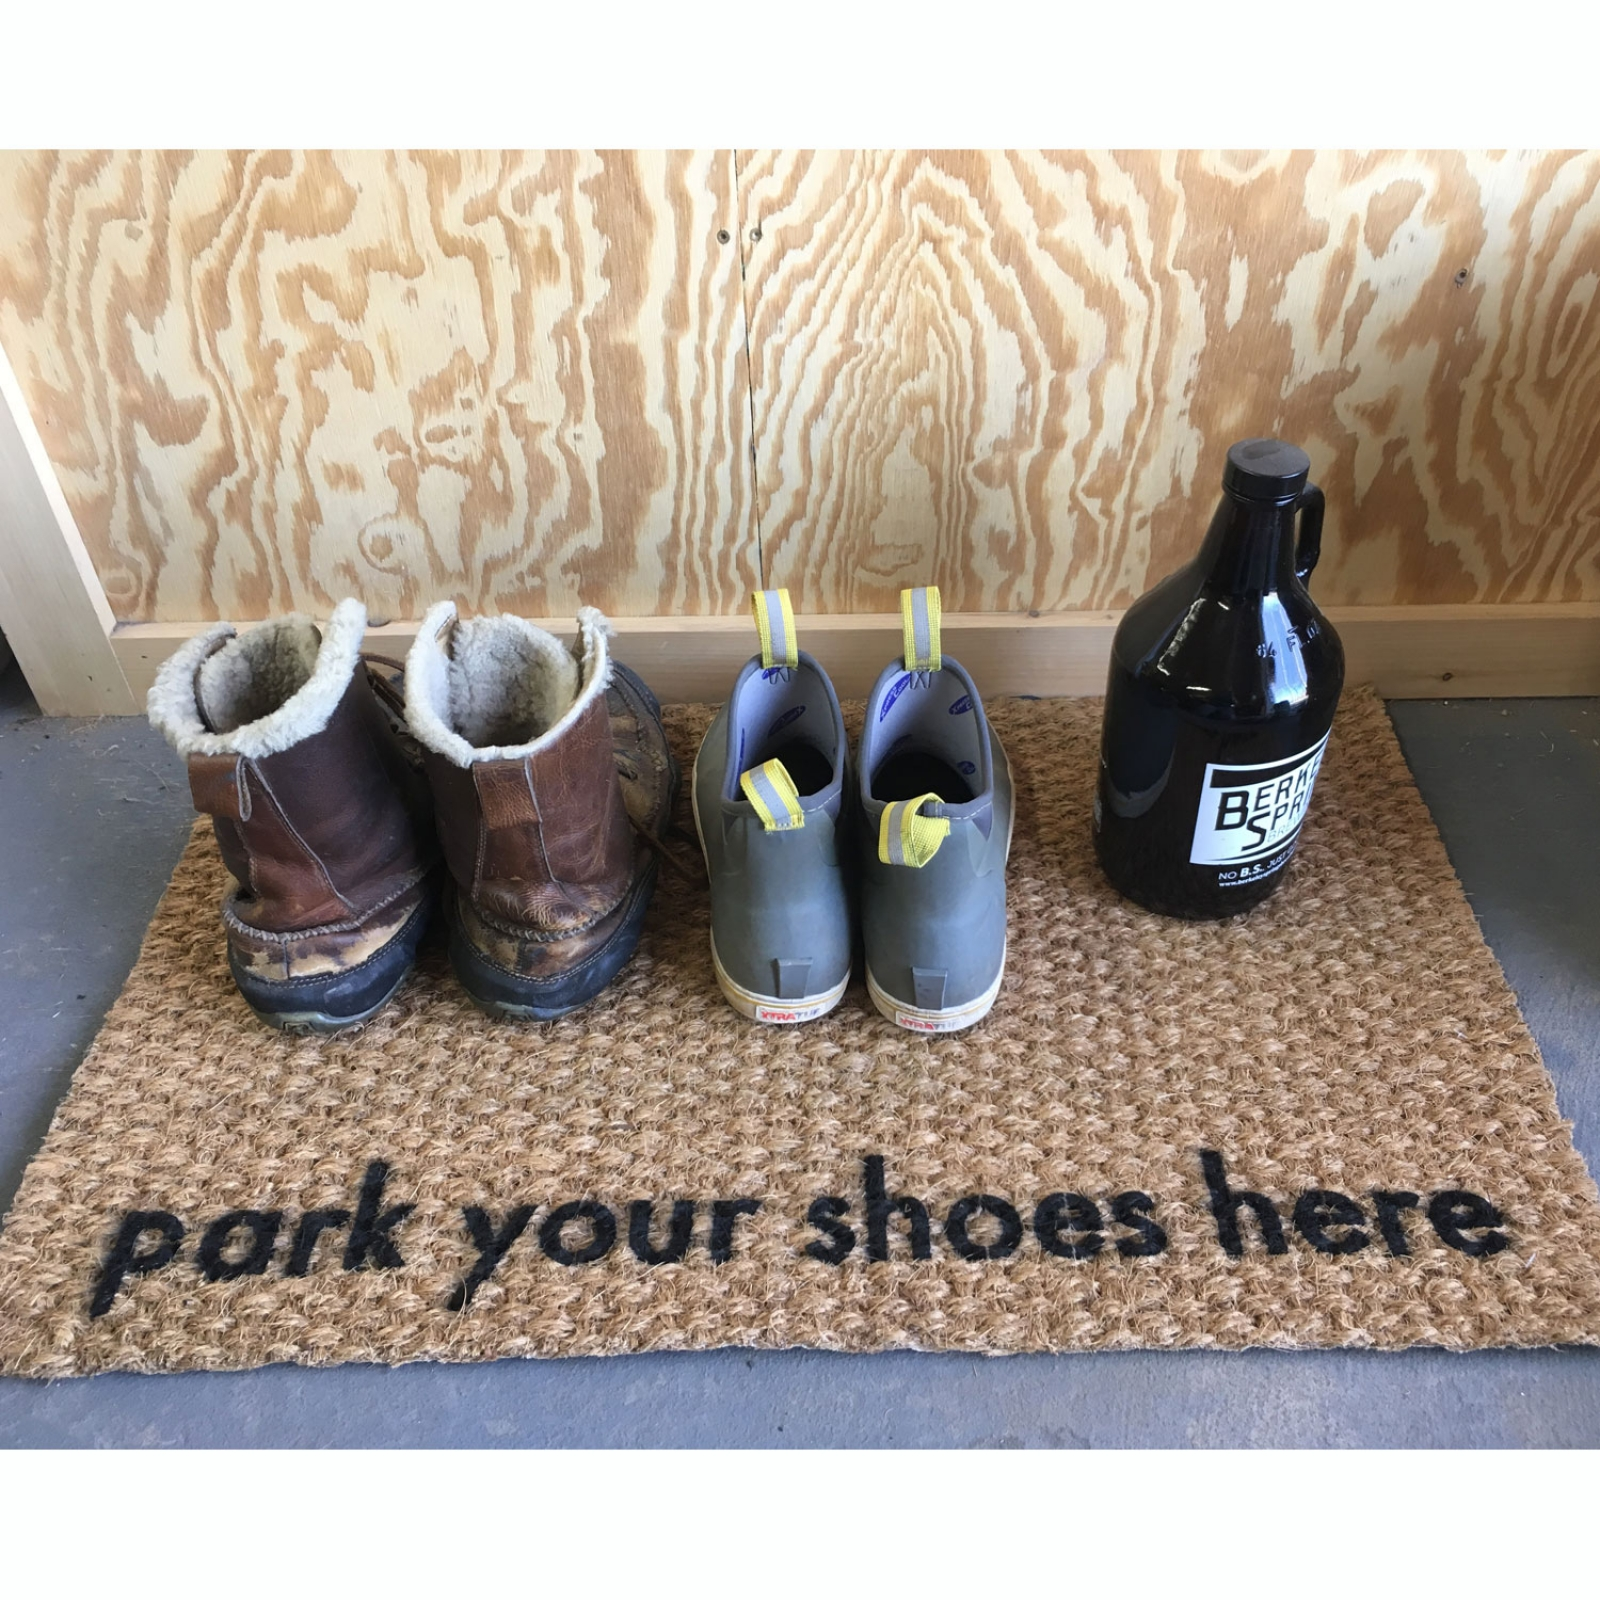 Shoes Off Park Your Shoes Here Funny Damn Good Doormat Damn Good